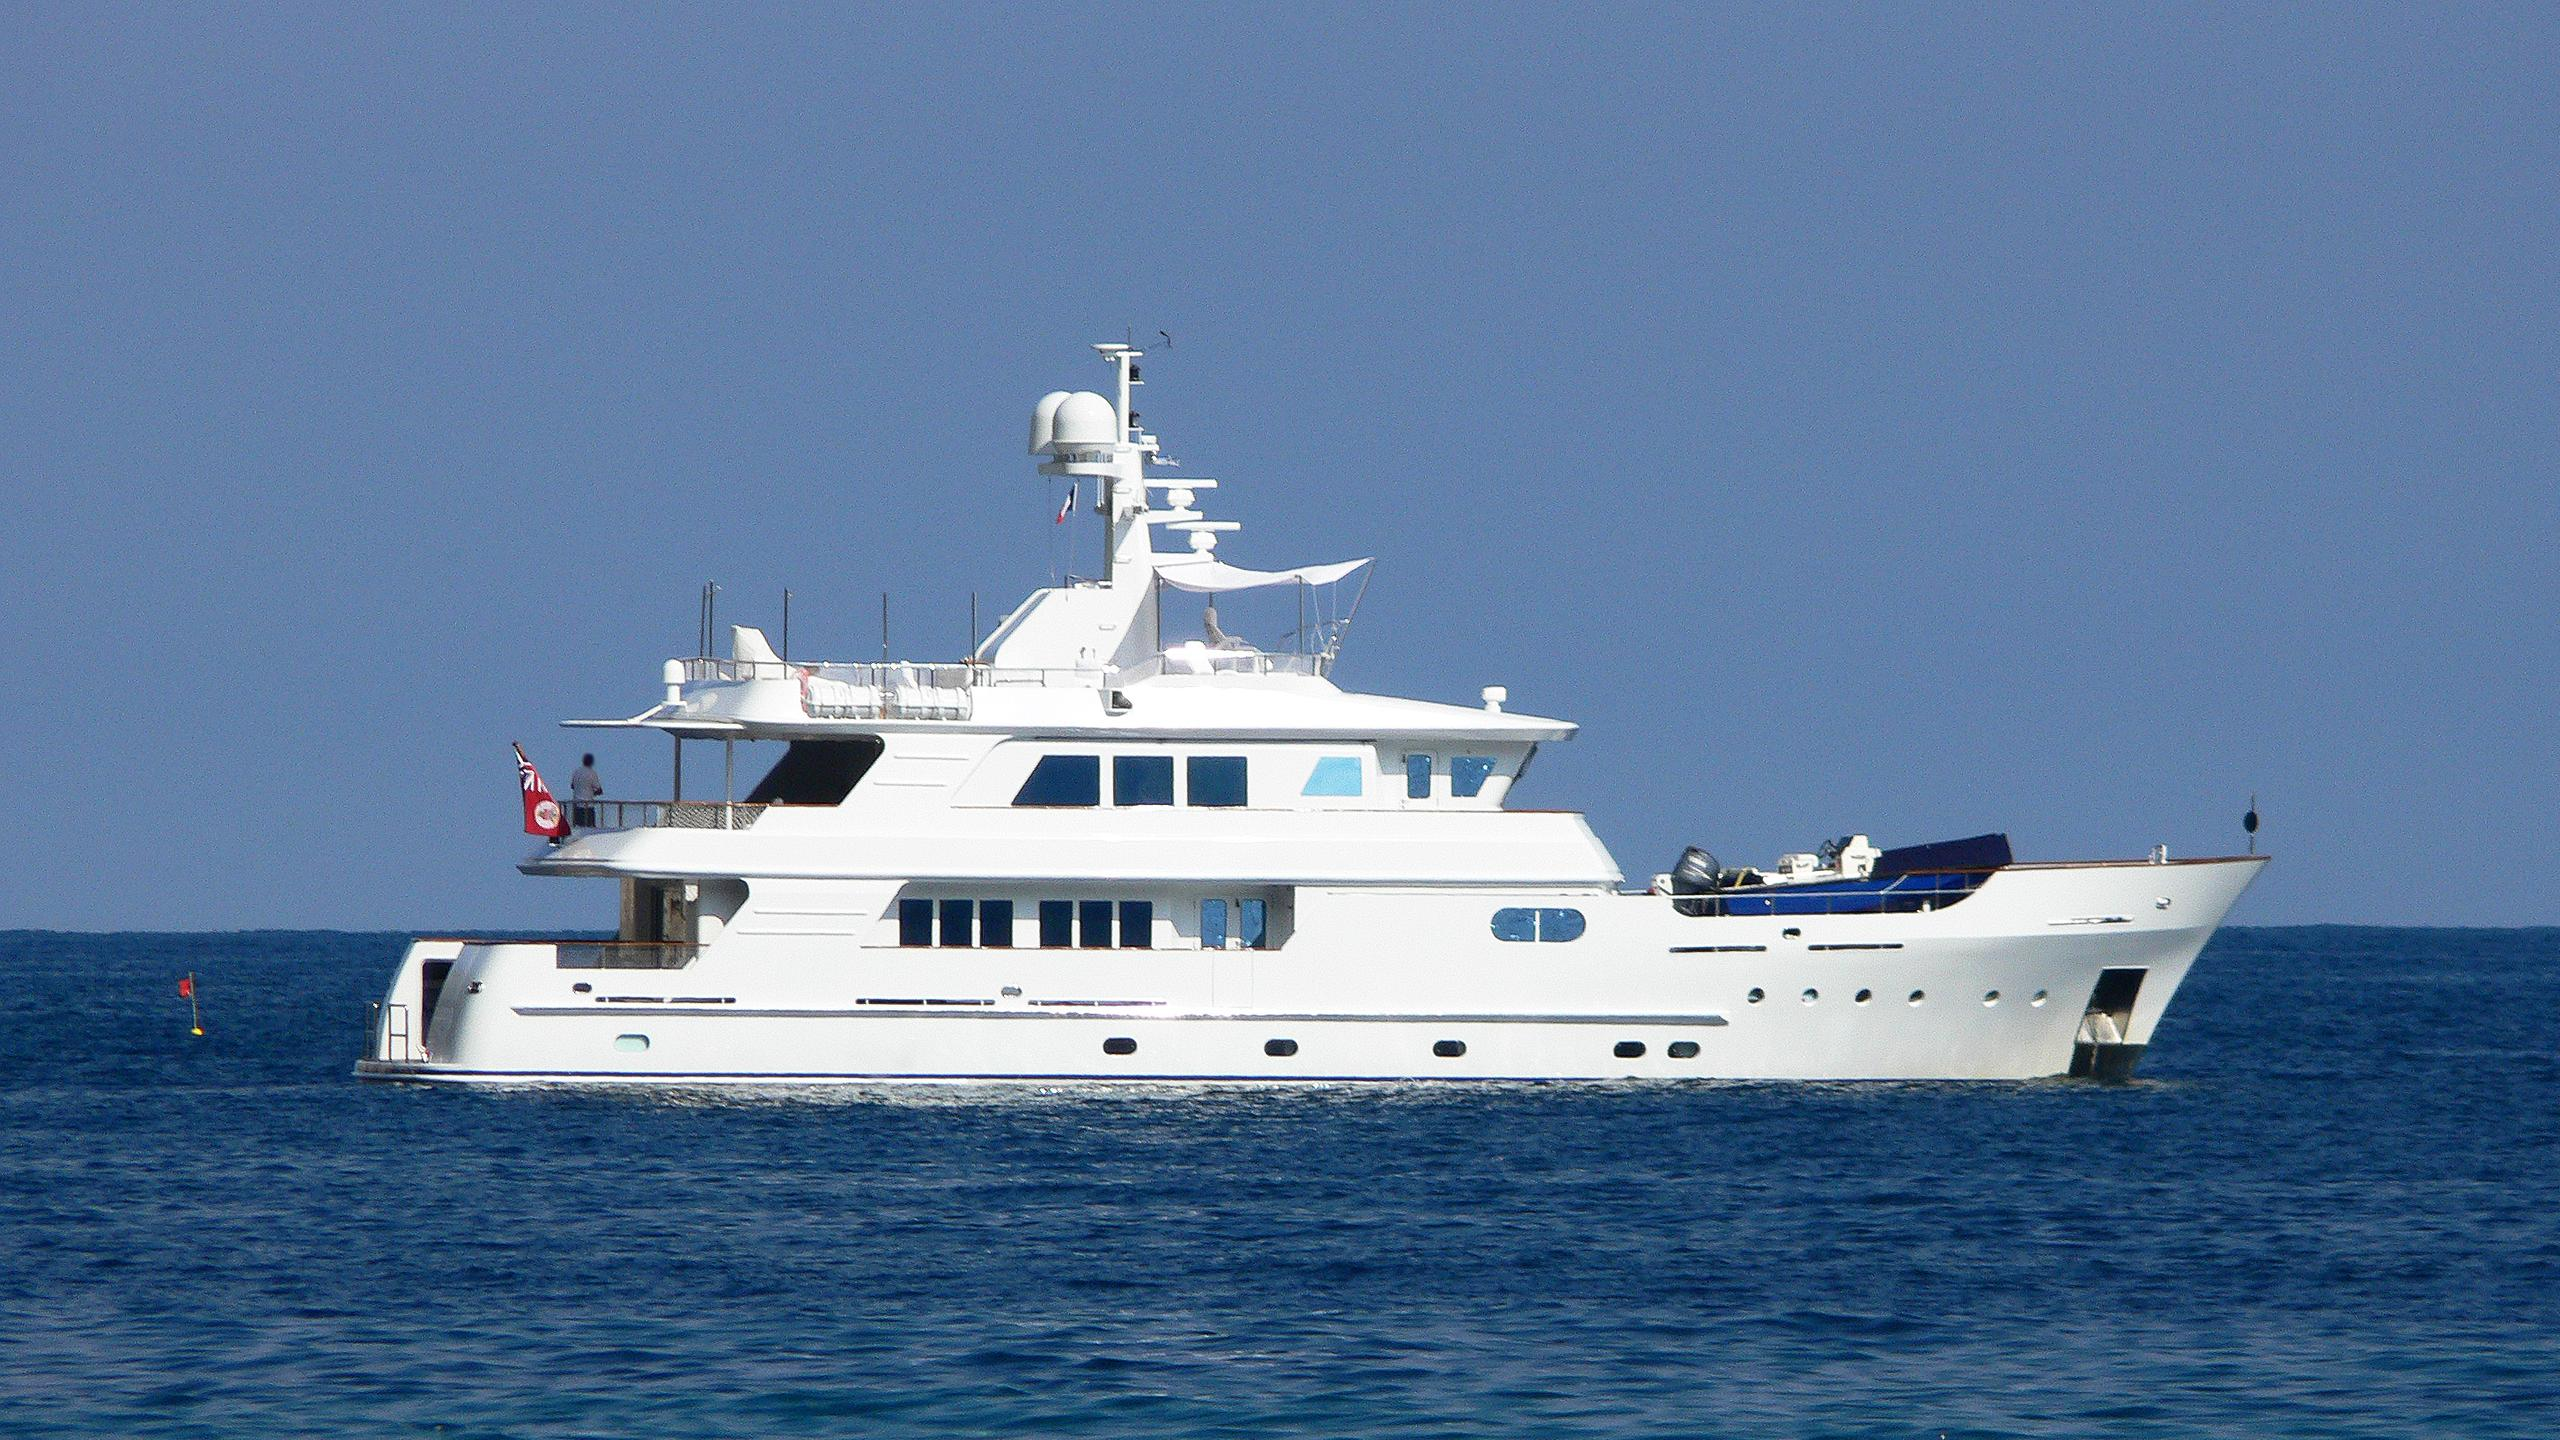 relentless-expedition-yacht-kingship-110-2006-34m-profile